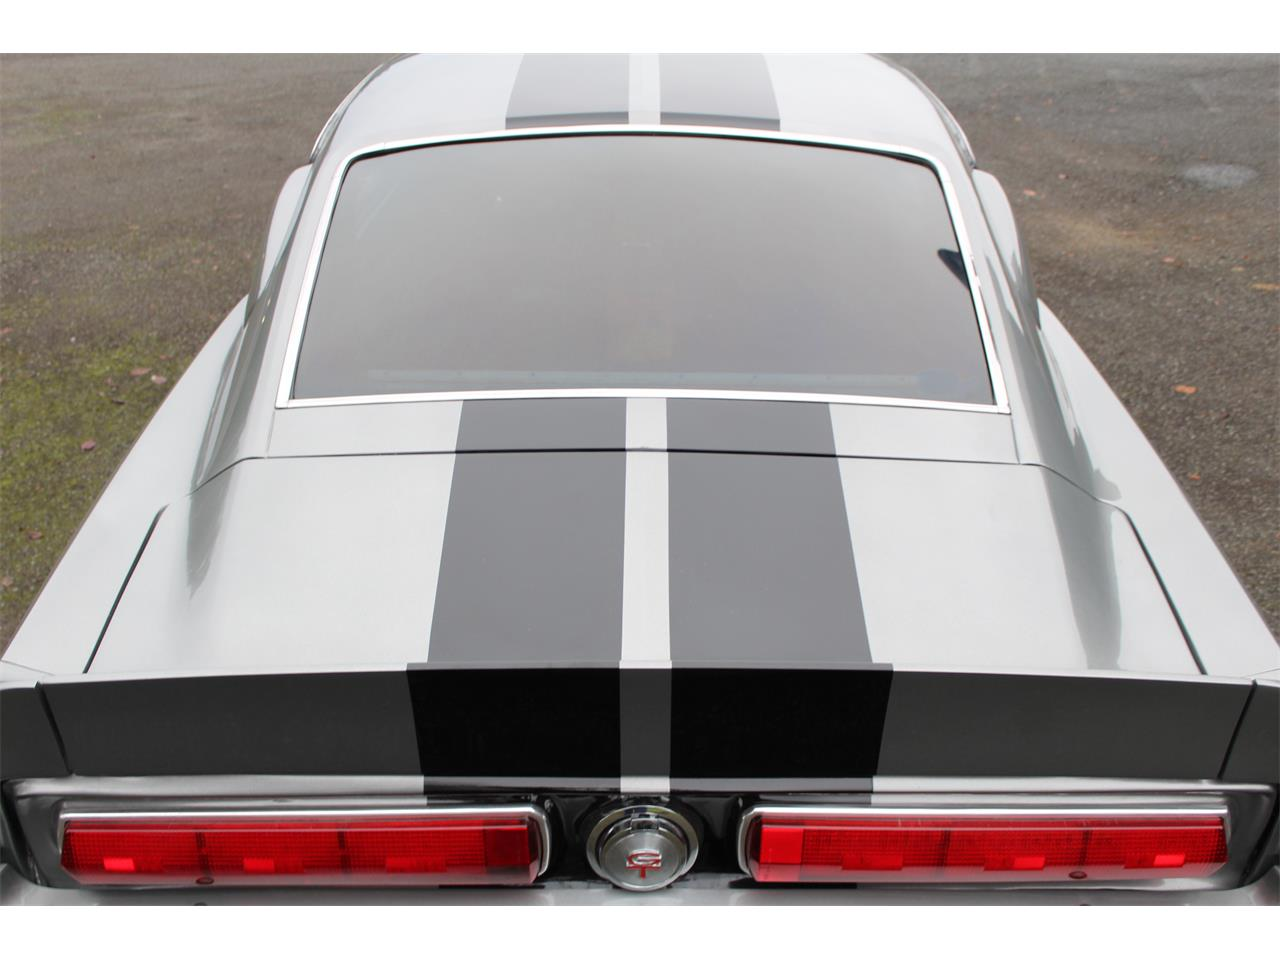 Ford Mustang Fastback 1968 prix tout compris